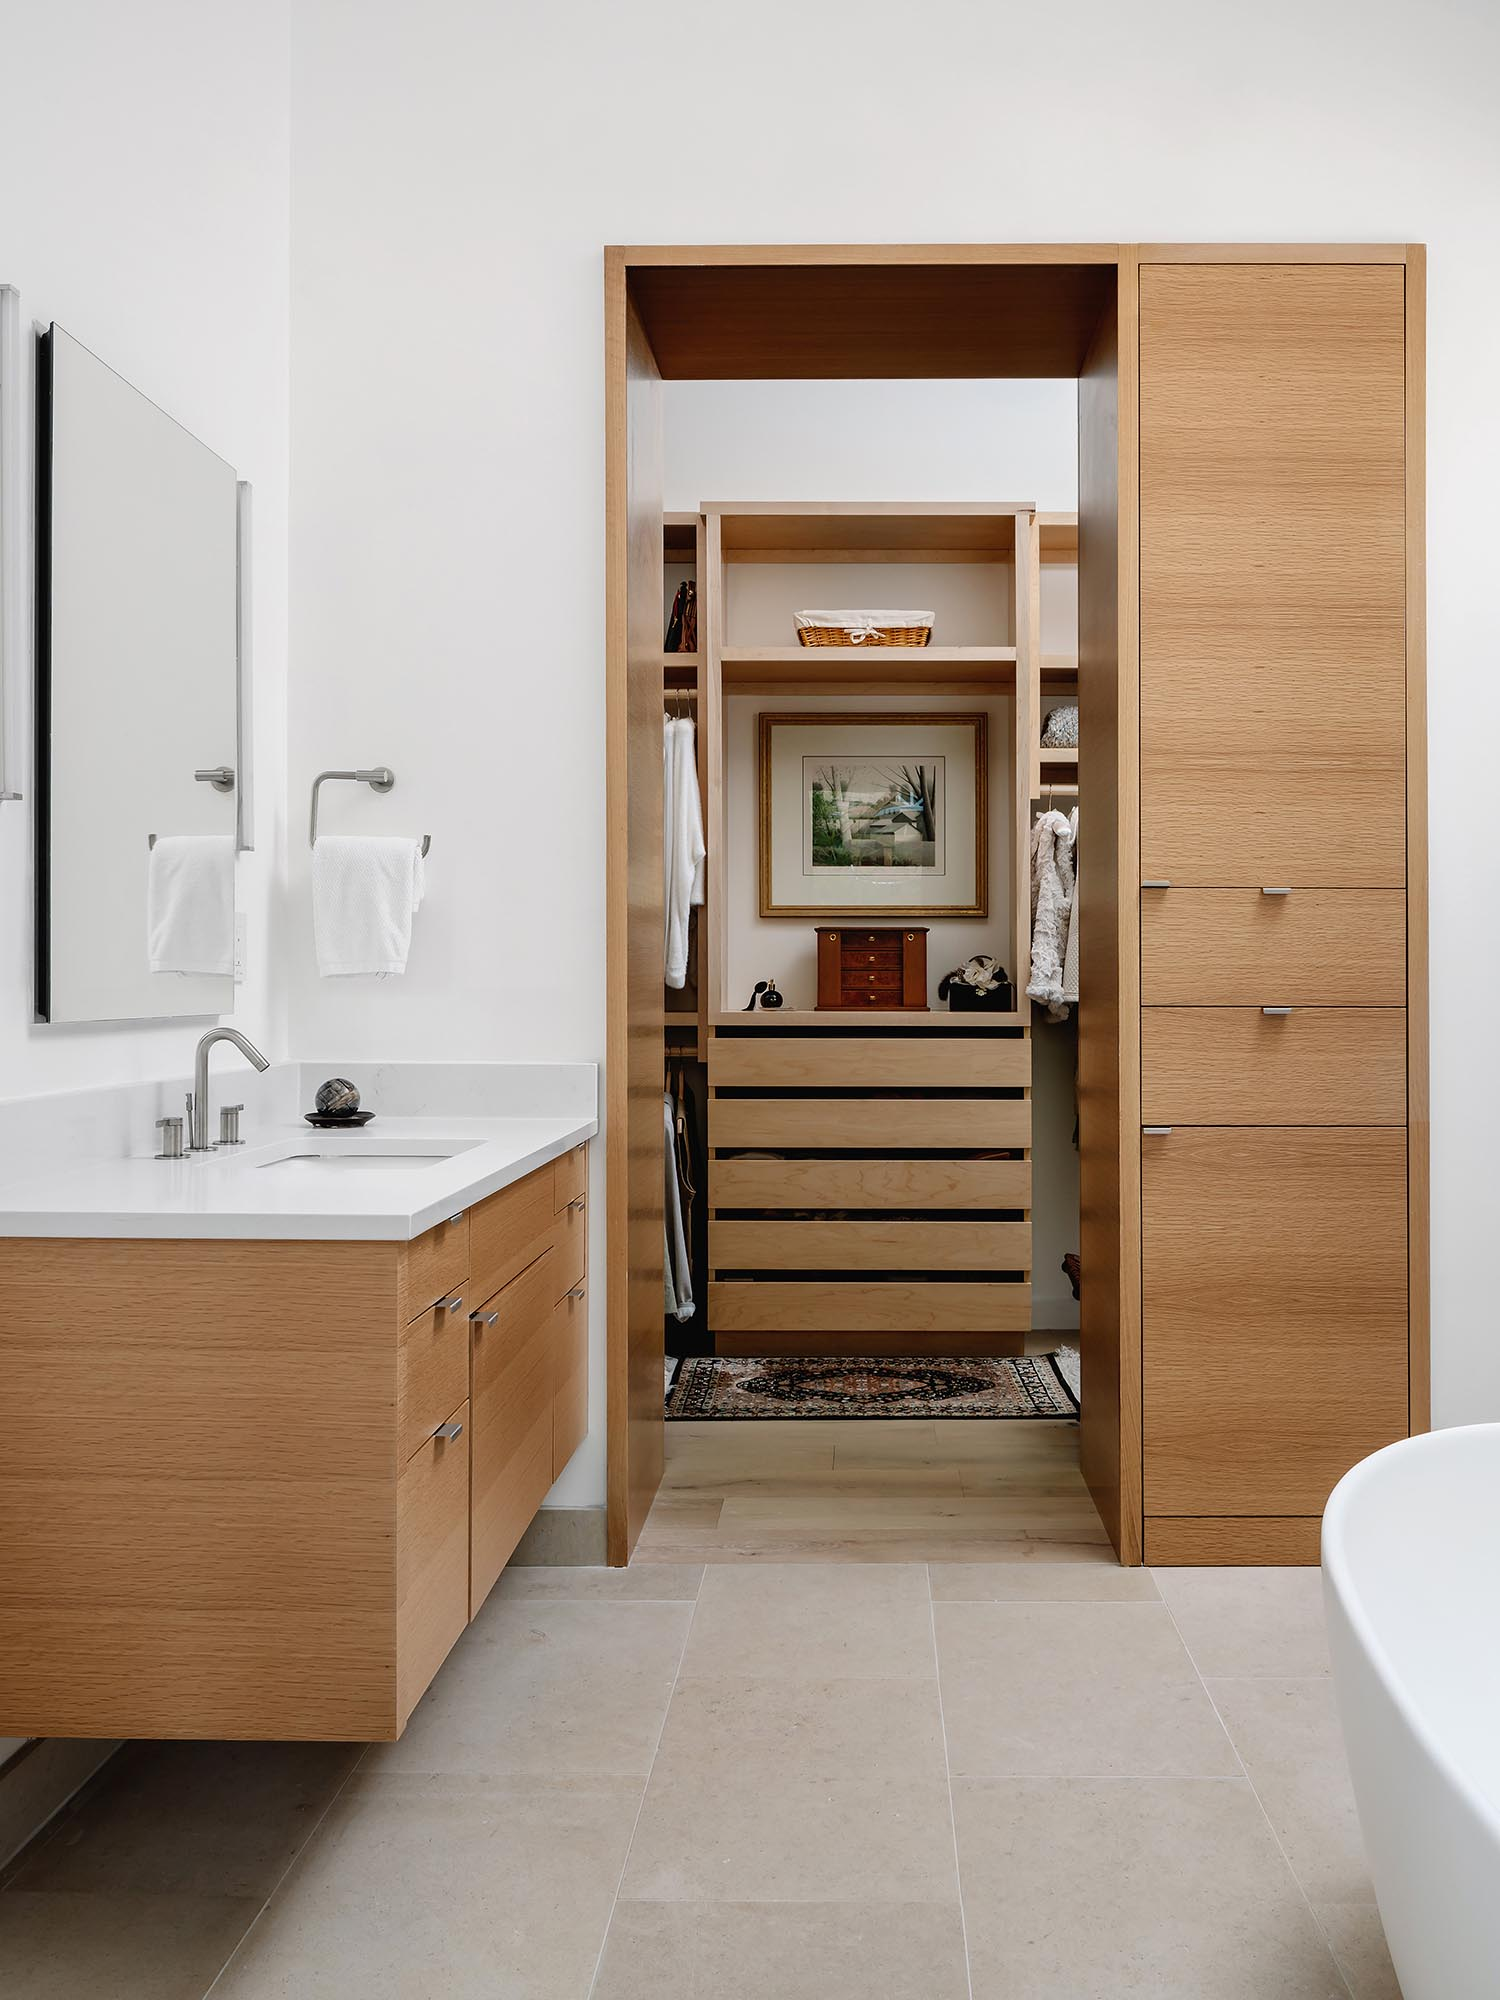 The en-suite bathroom, which has a walk-in closet attached, includes a freestanding bathtub, separate vanities, and limestone on the floor and wall.